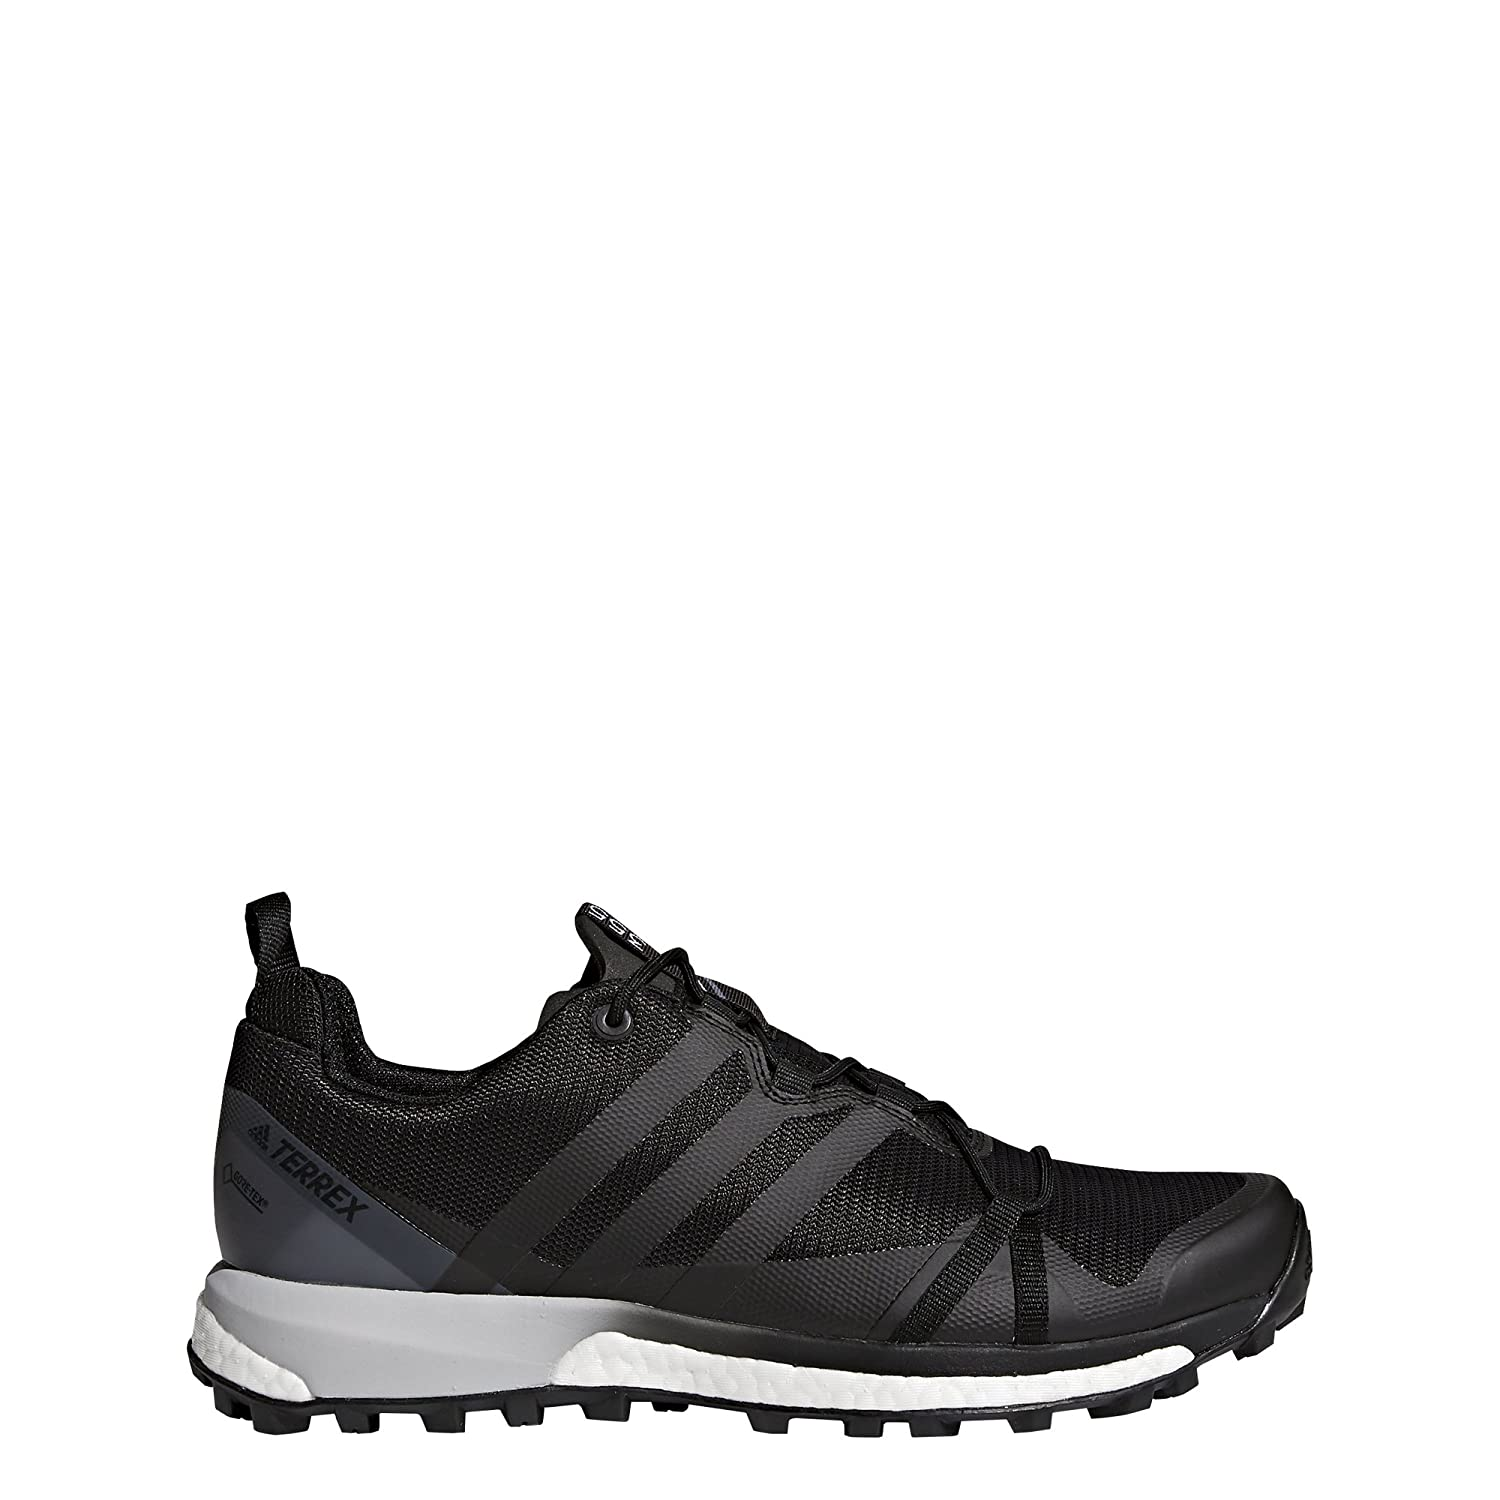 adidas outdoor Men's Terrex Agravic GTX Black/Black/White 10 D US